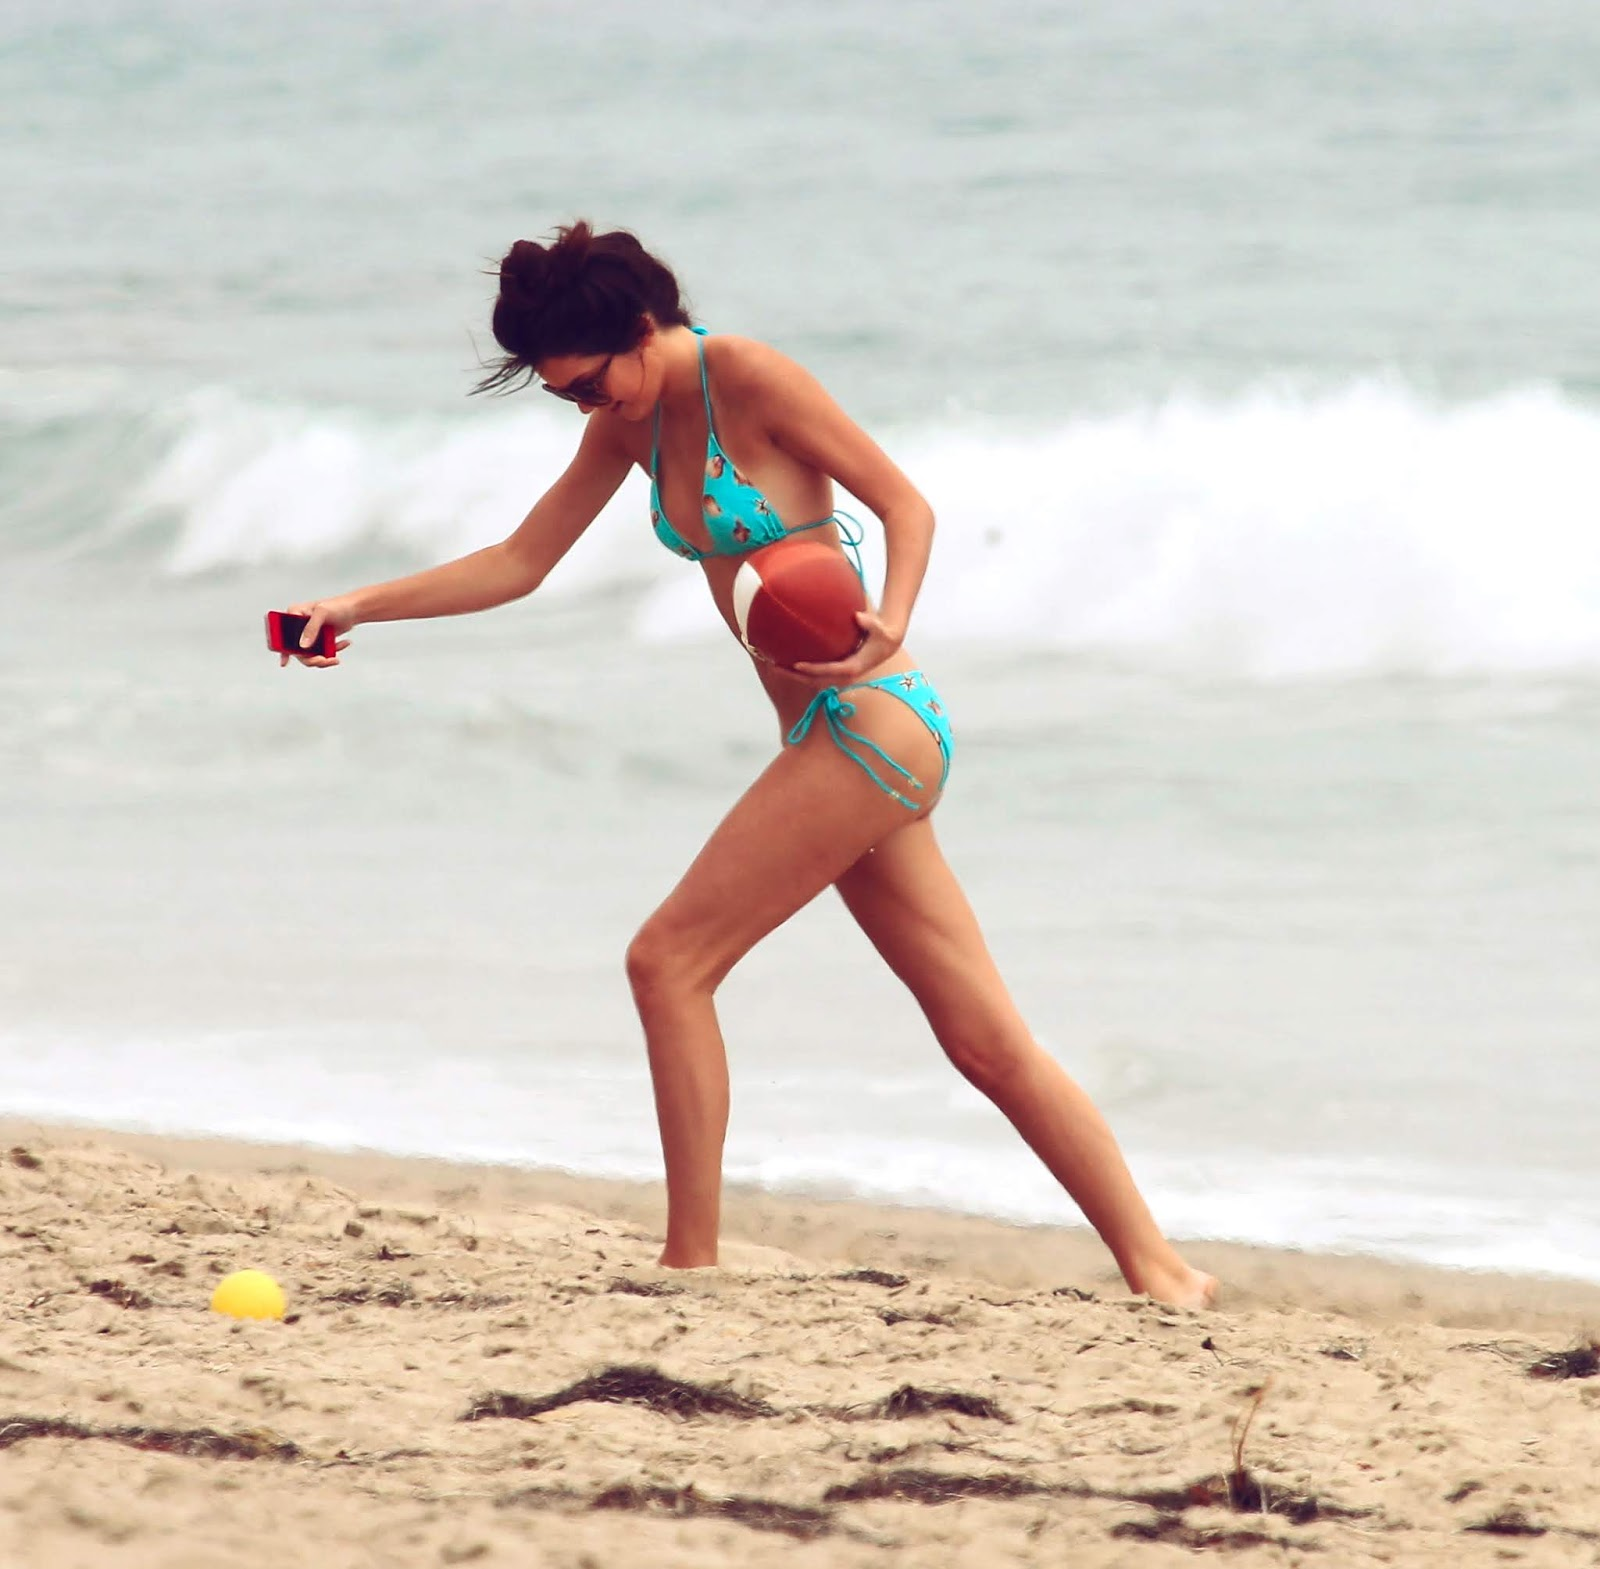 28 - At a Beach with friends in Malibu California on July 14, 2012